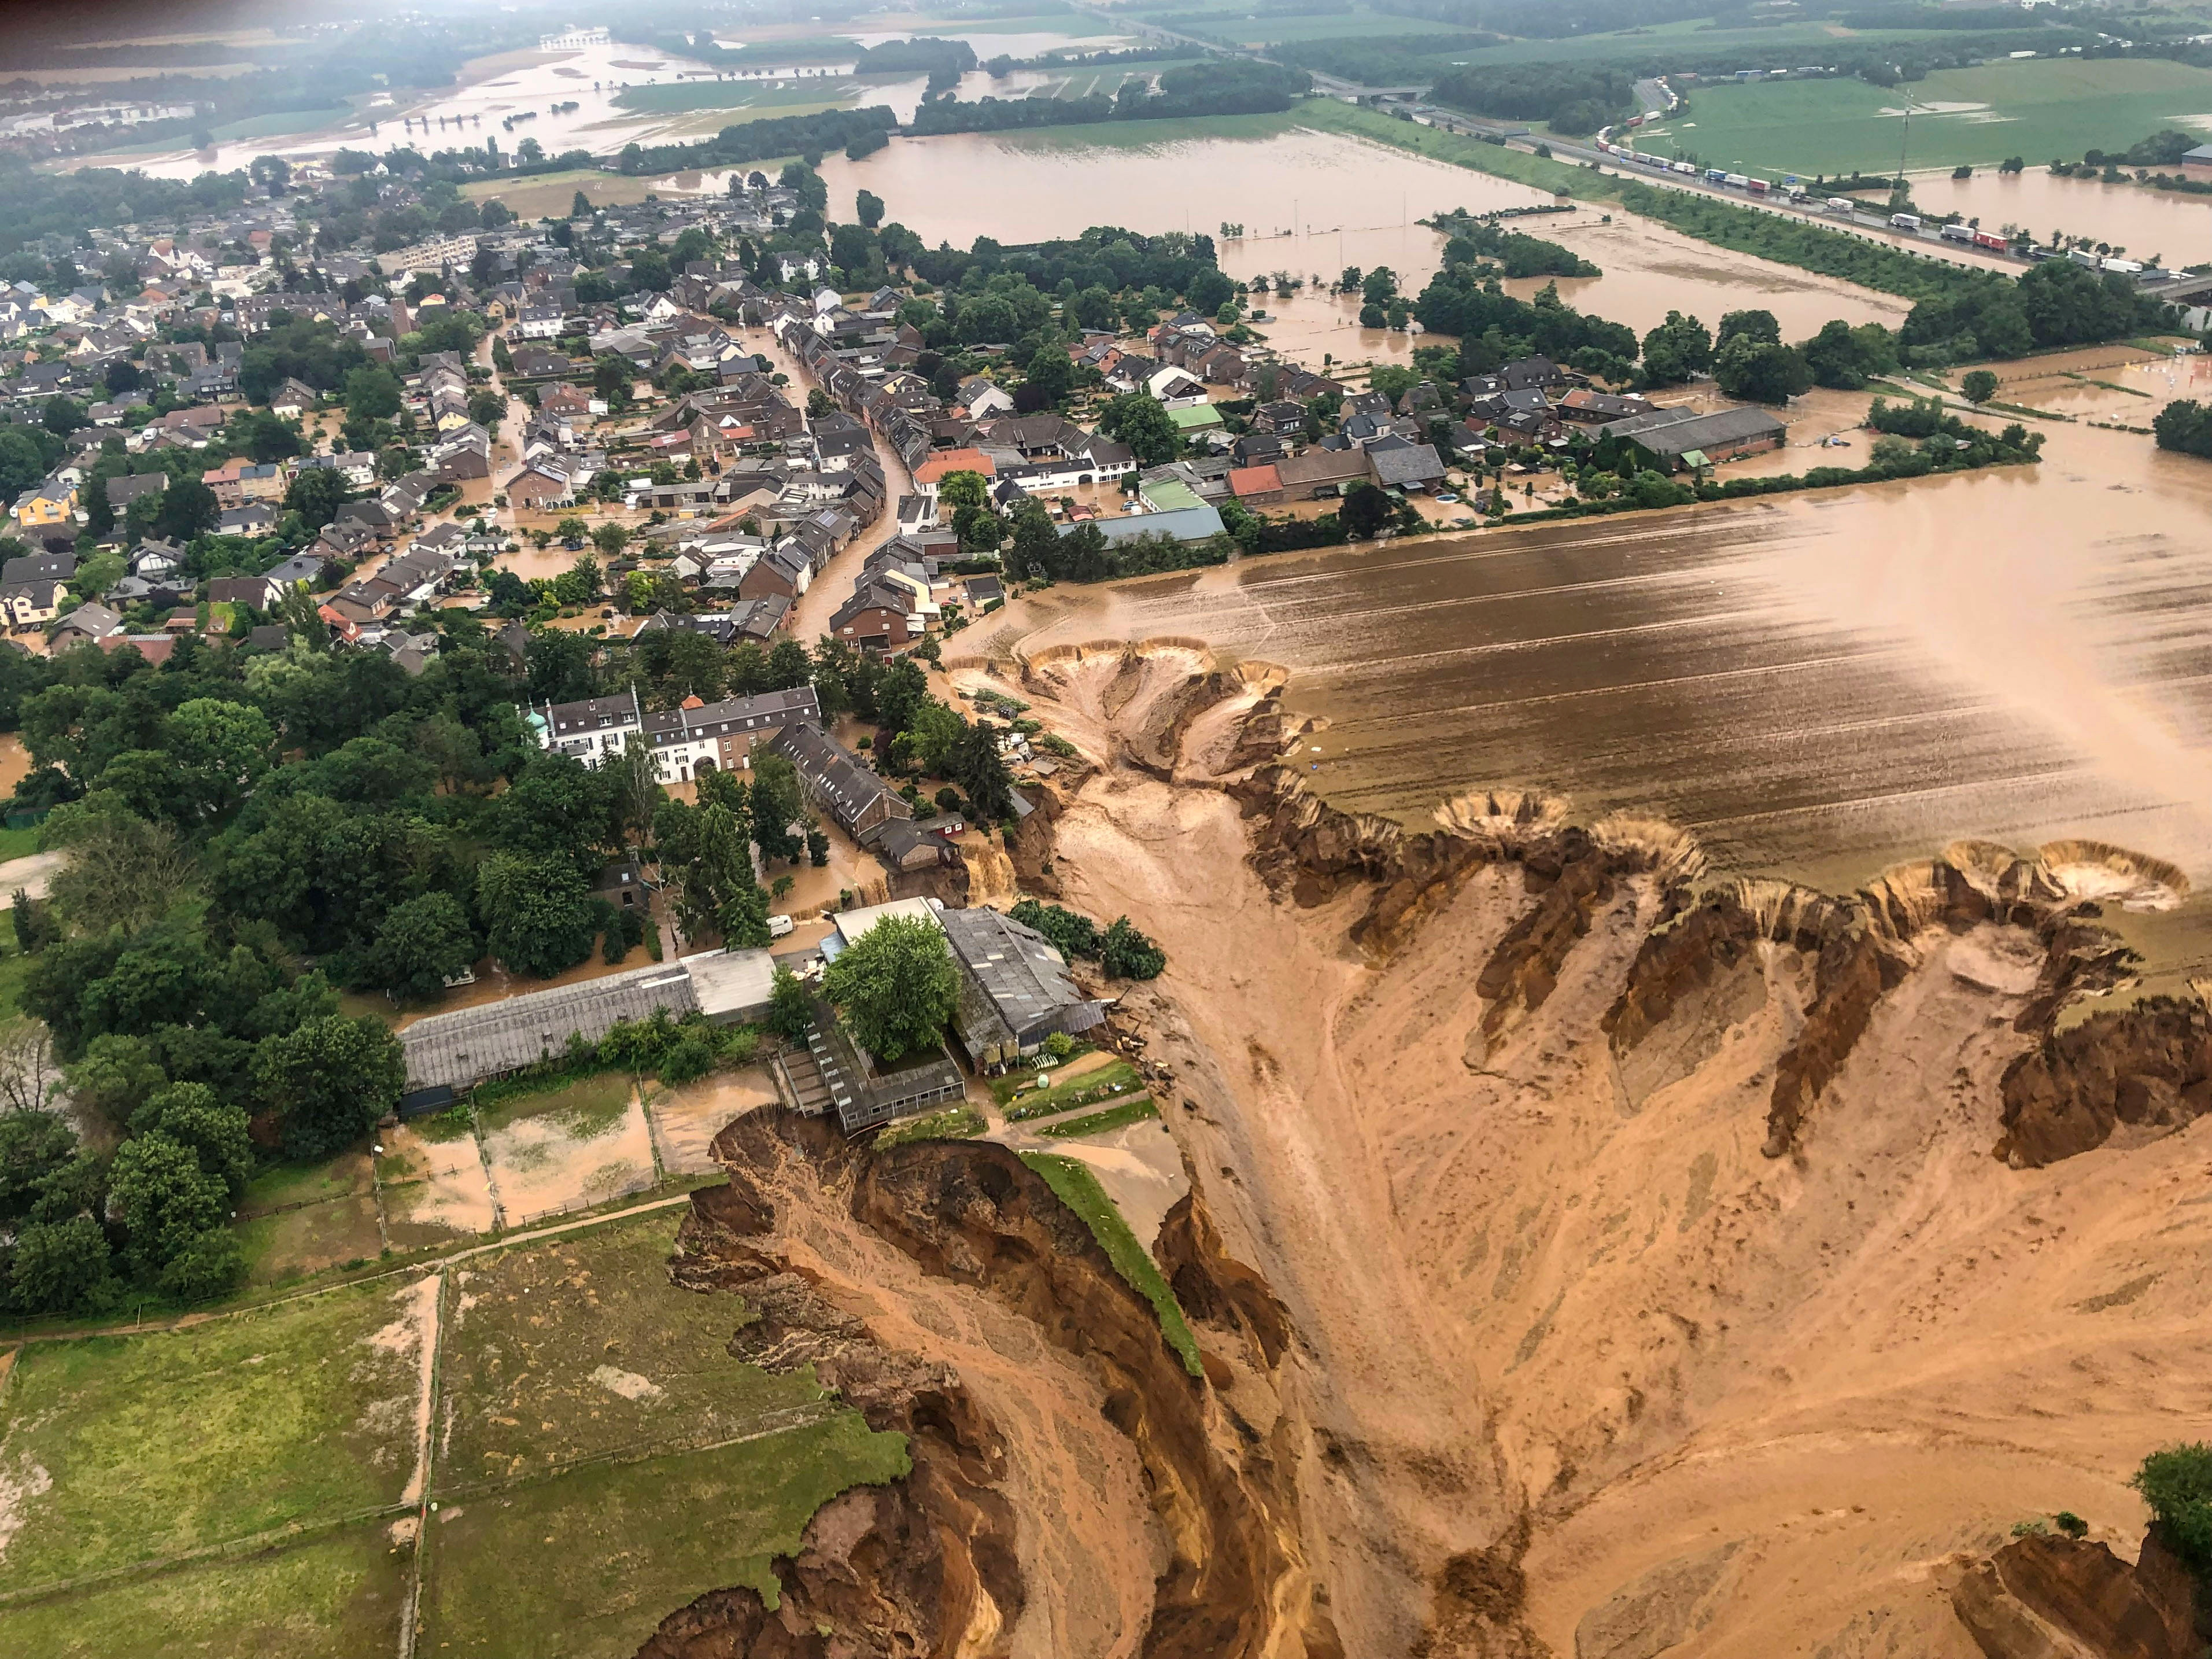 An areal view after flooding at Erftstadt-Blessem, Germany, July 16, 2021.  REUTERS/Rhein-Erft-Kreis   NO RESALES. NO ARCHIVES